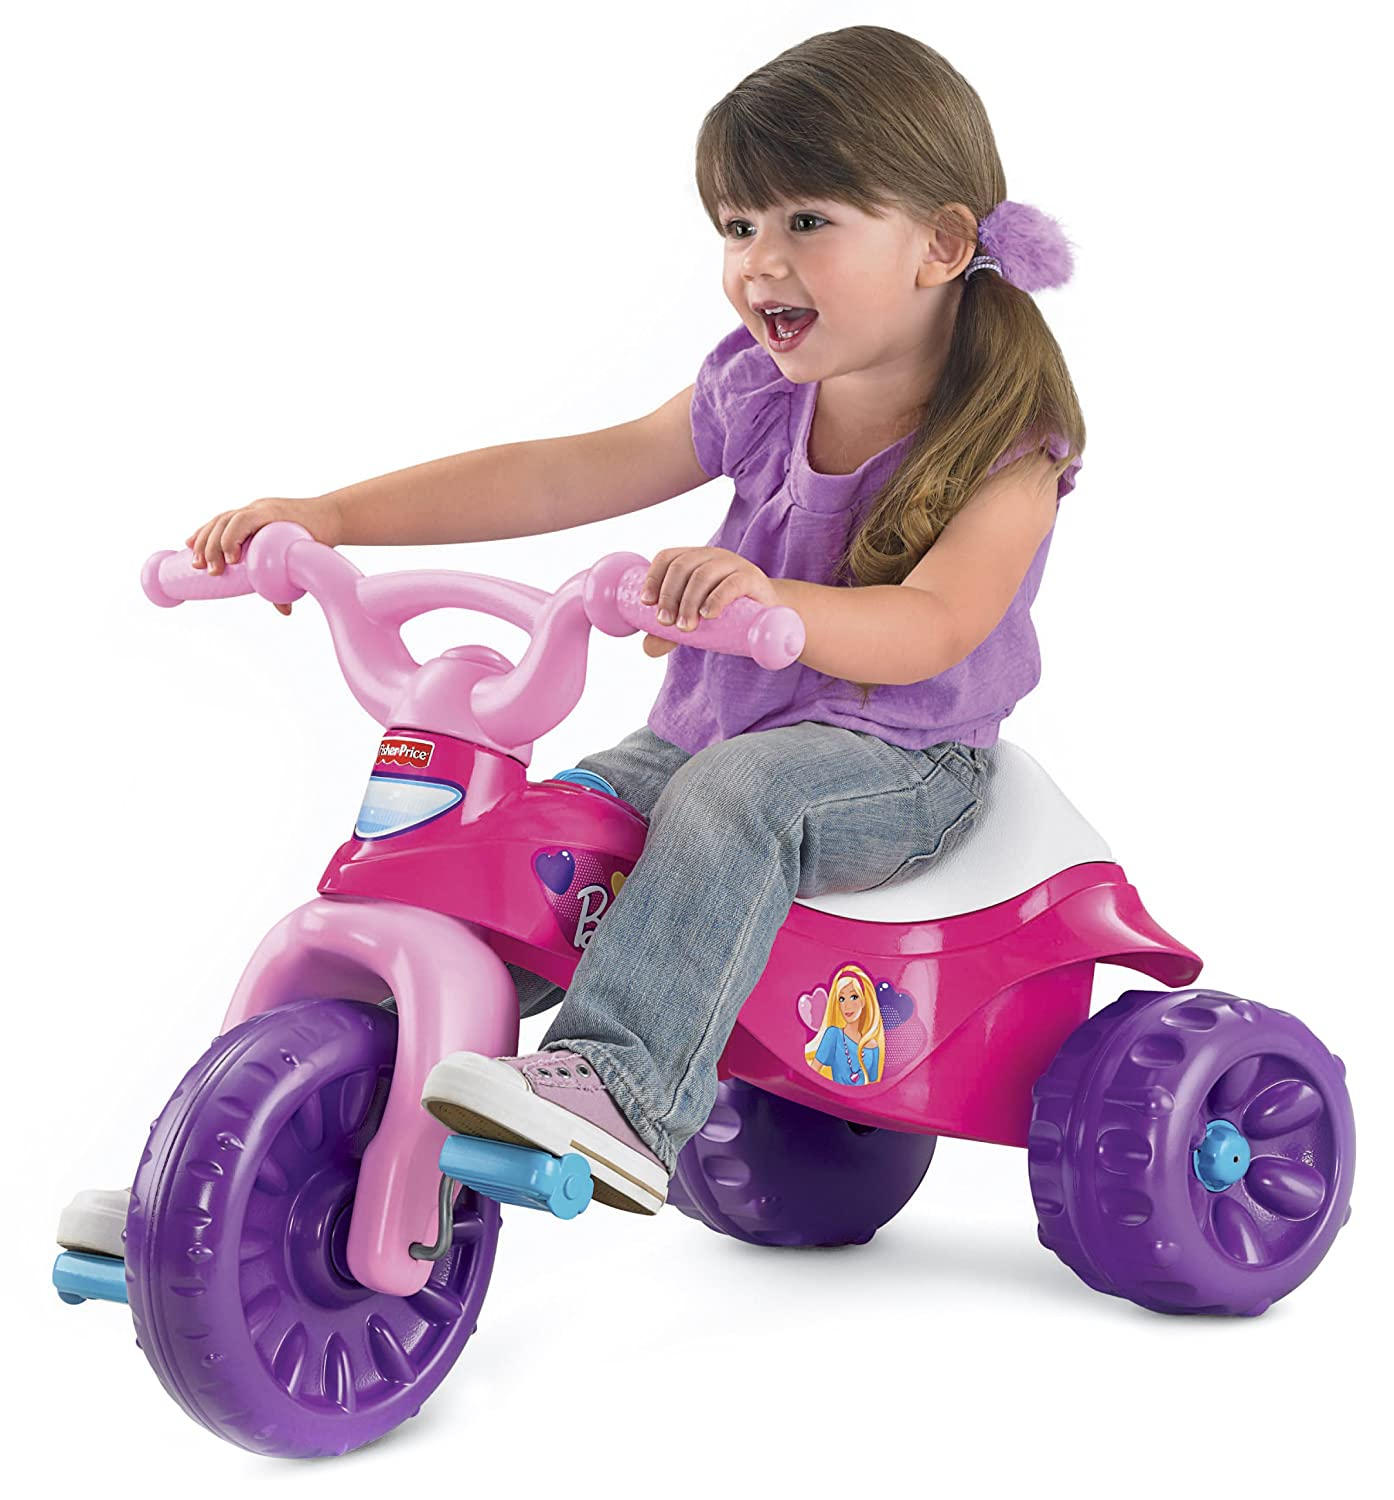 FP Surprise Sounds Home Fisher Price Barbie Tough Trike